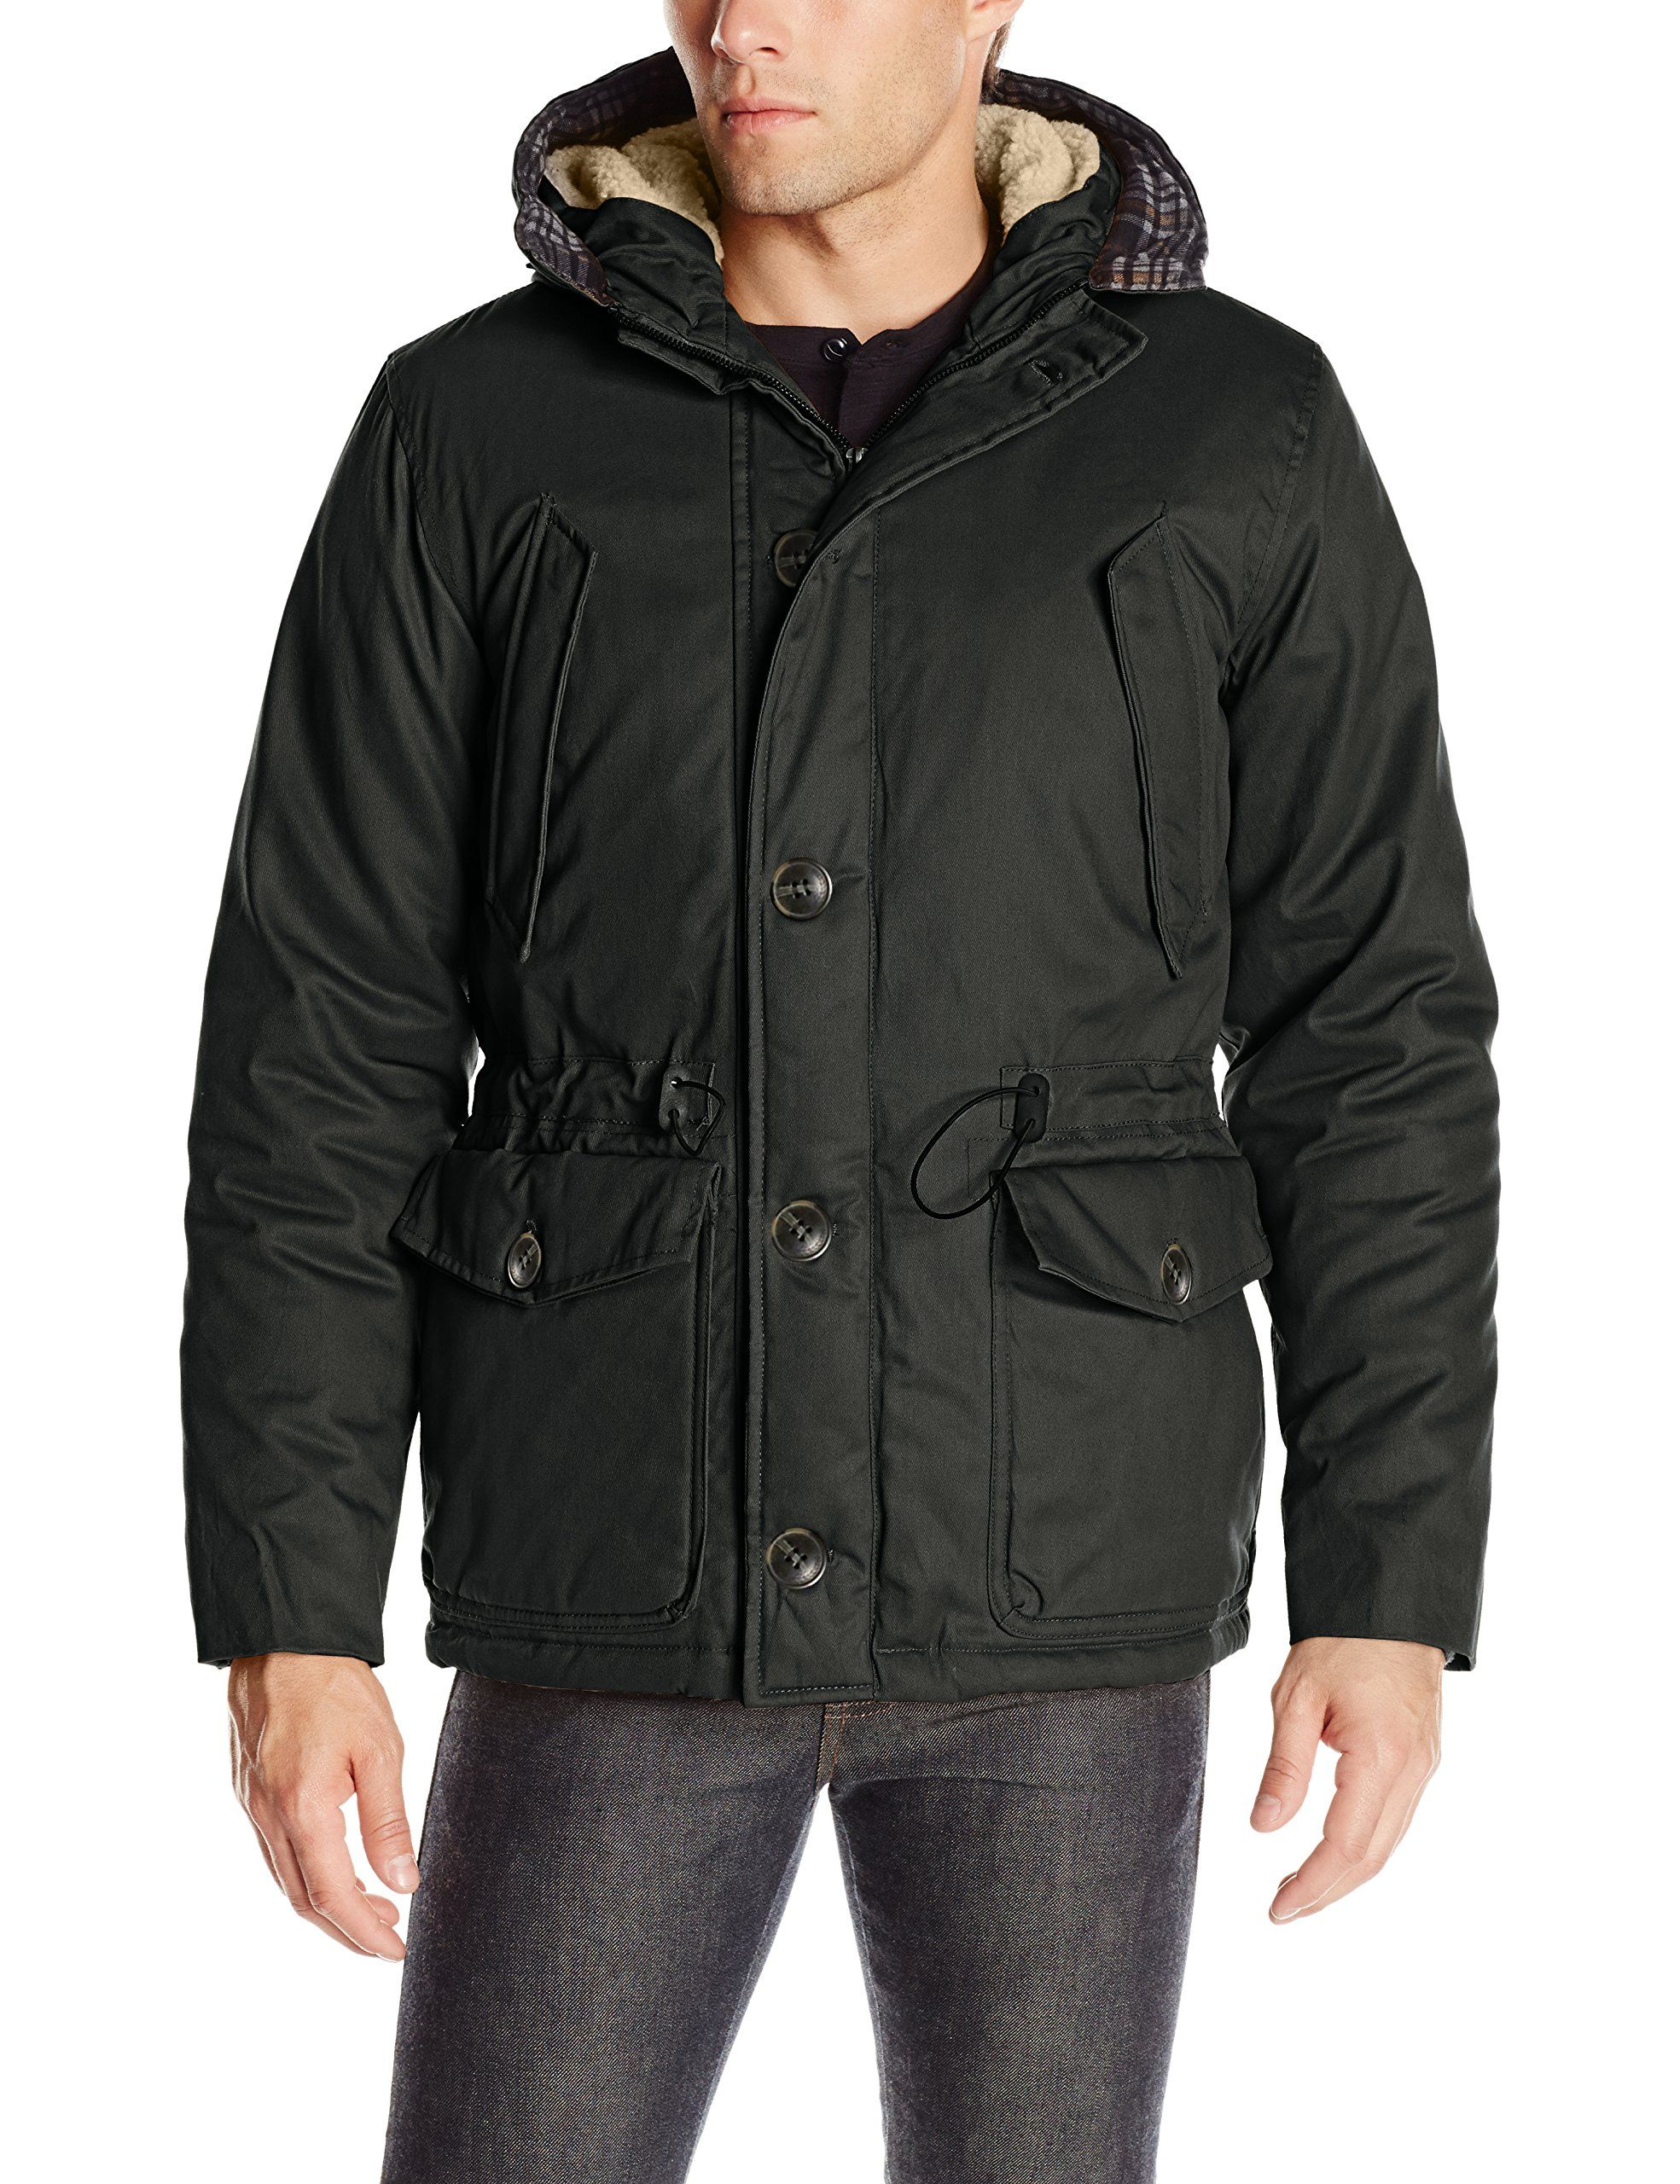 English Laundry Mens Wax Cotton Hooded Parka Black Medium Click Image For More Details This Is An Hooded Parka Jacket Outerwear Jackets Outerwear Fashion [ 2560 x 1969 Pixel ]